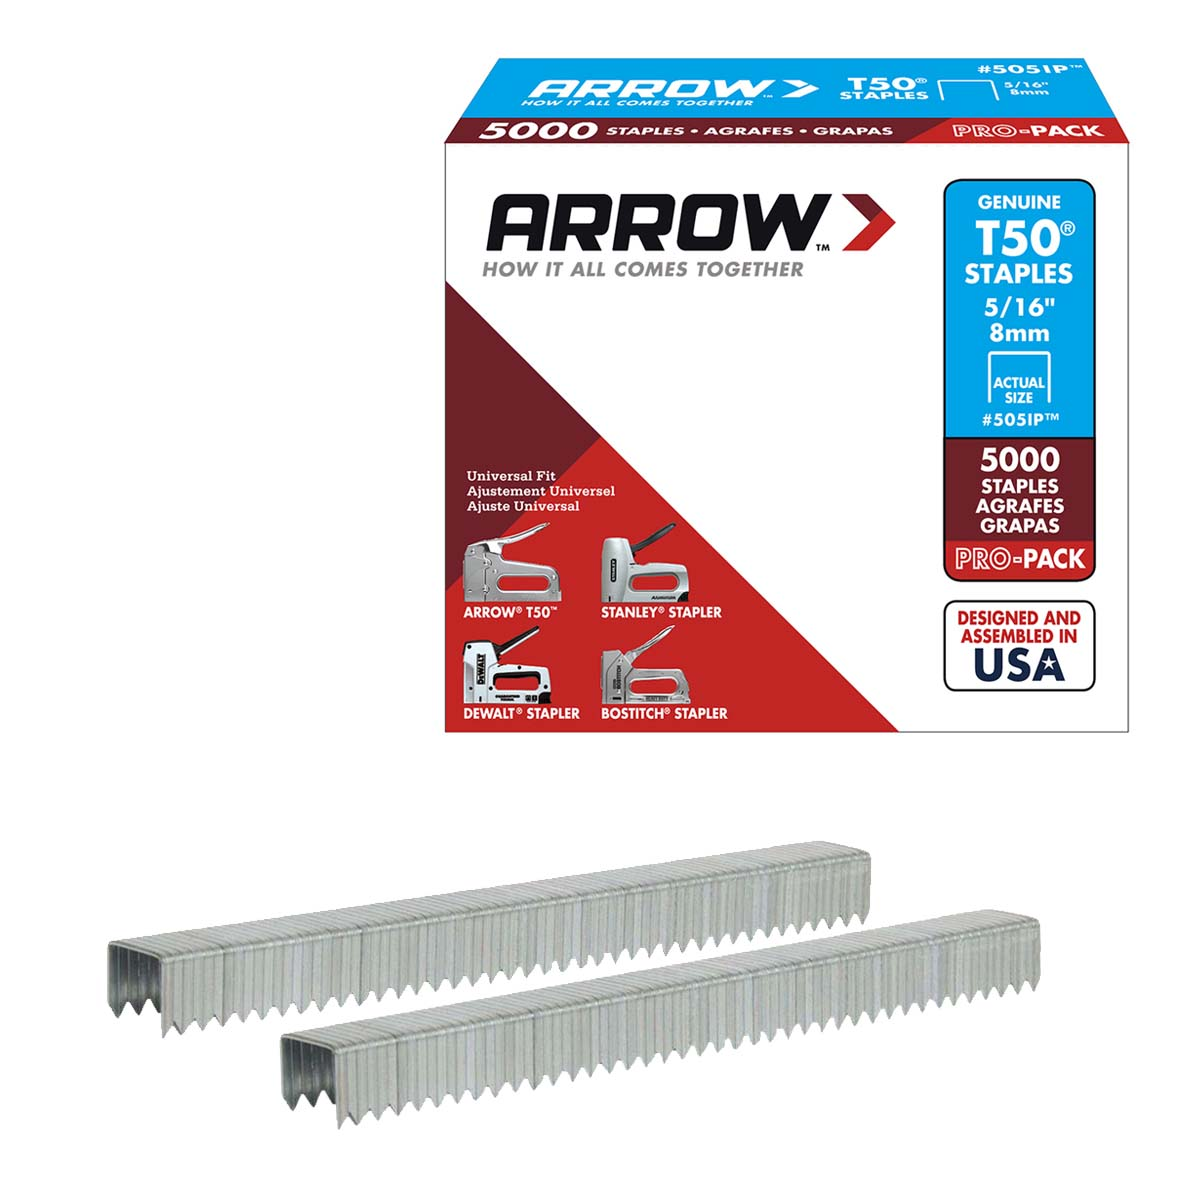 T50 ARROW 8MM HD STAPLES #505IP